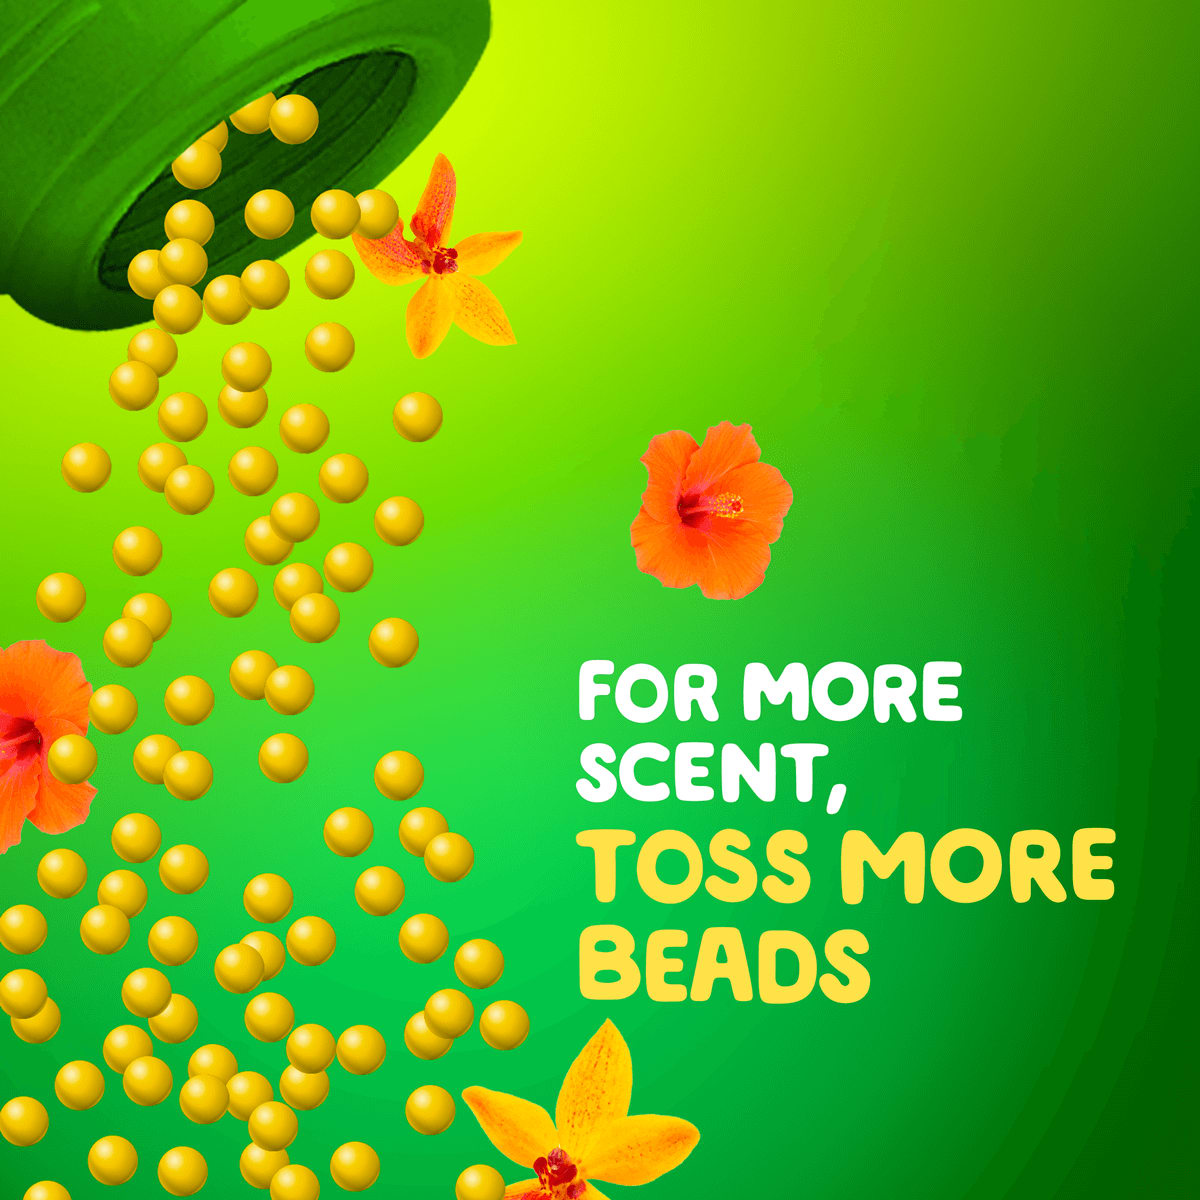 For more scent, toss more beads (perfume beads pouring)